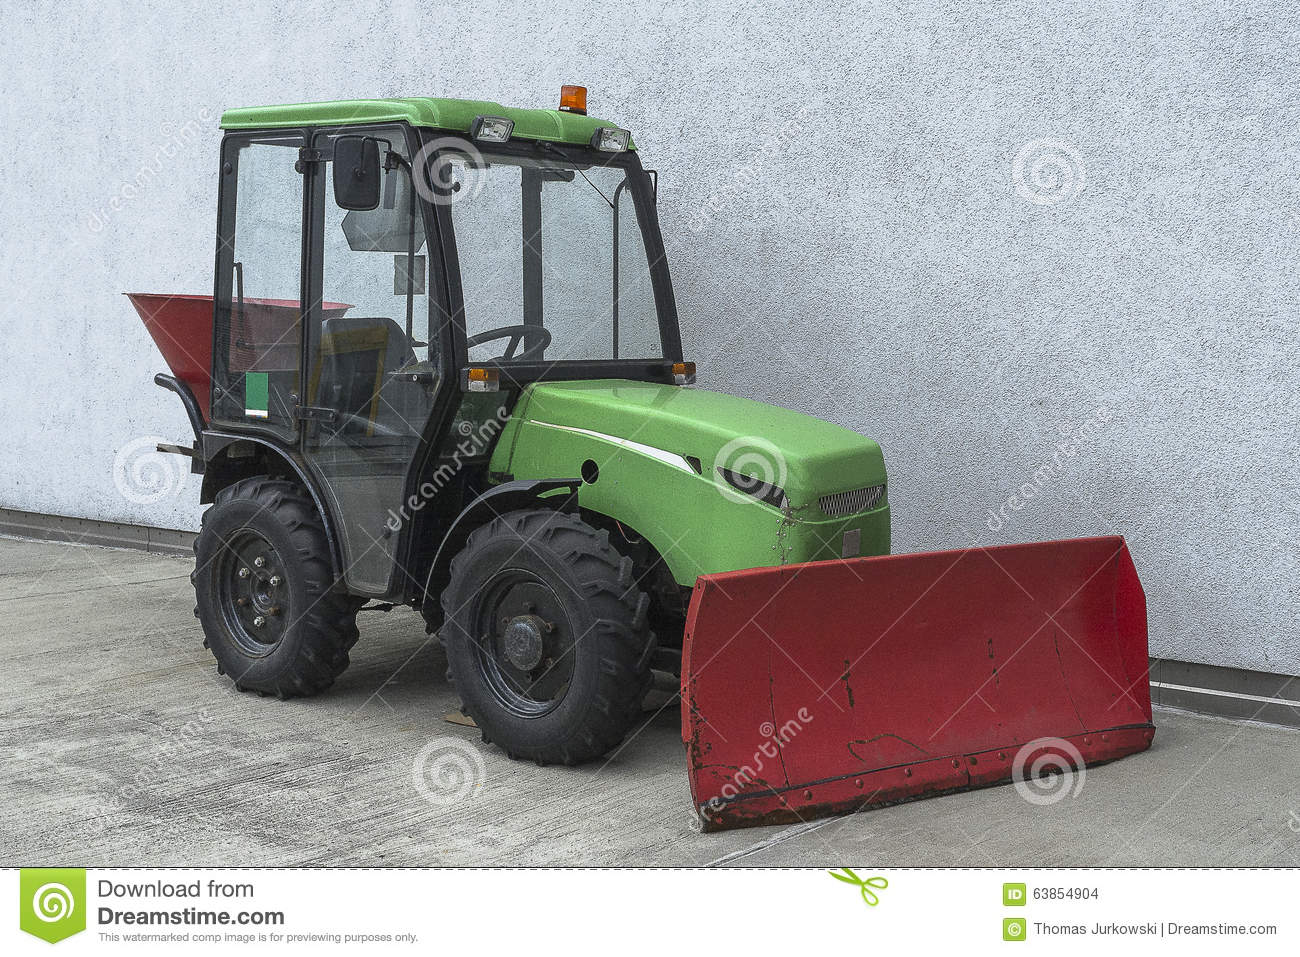 Snowplough tractor stock photo  Image of gallery, clear